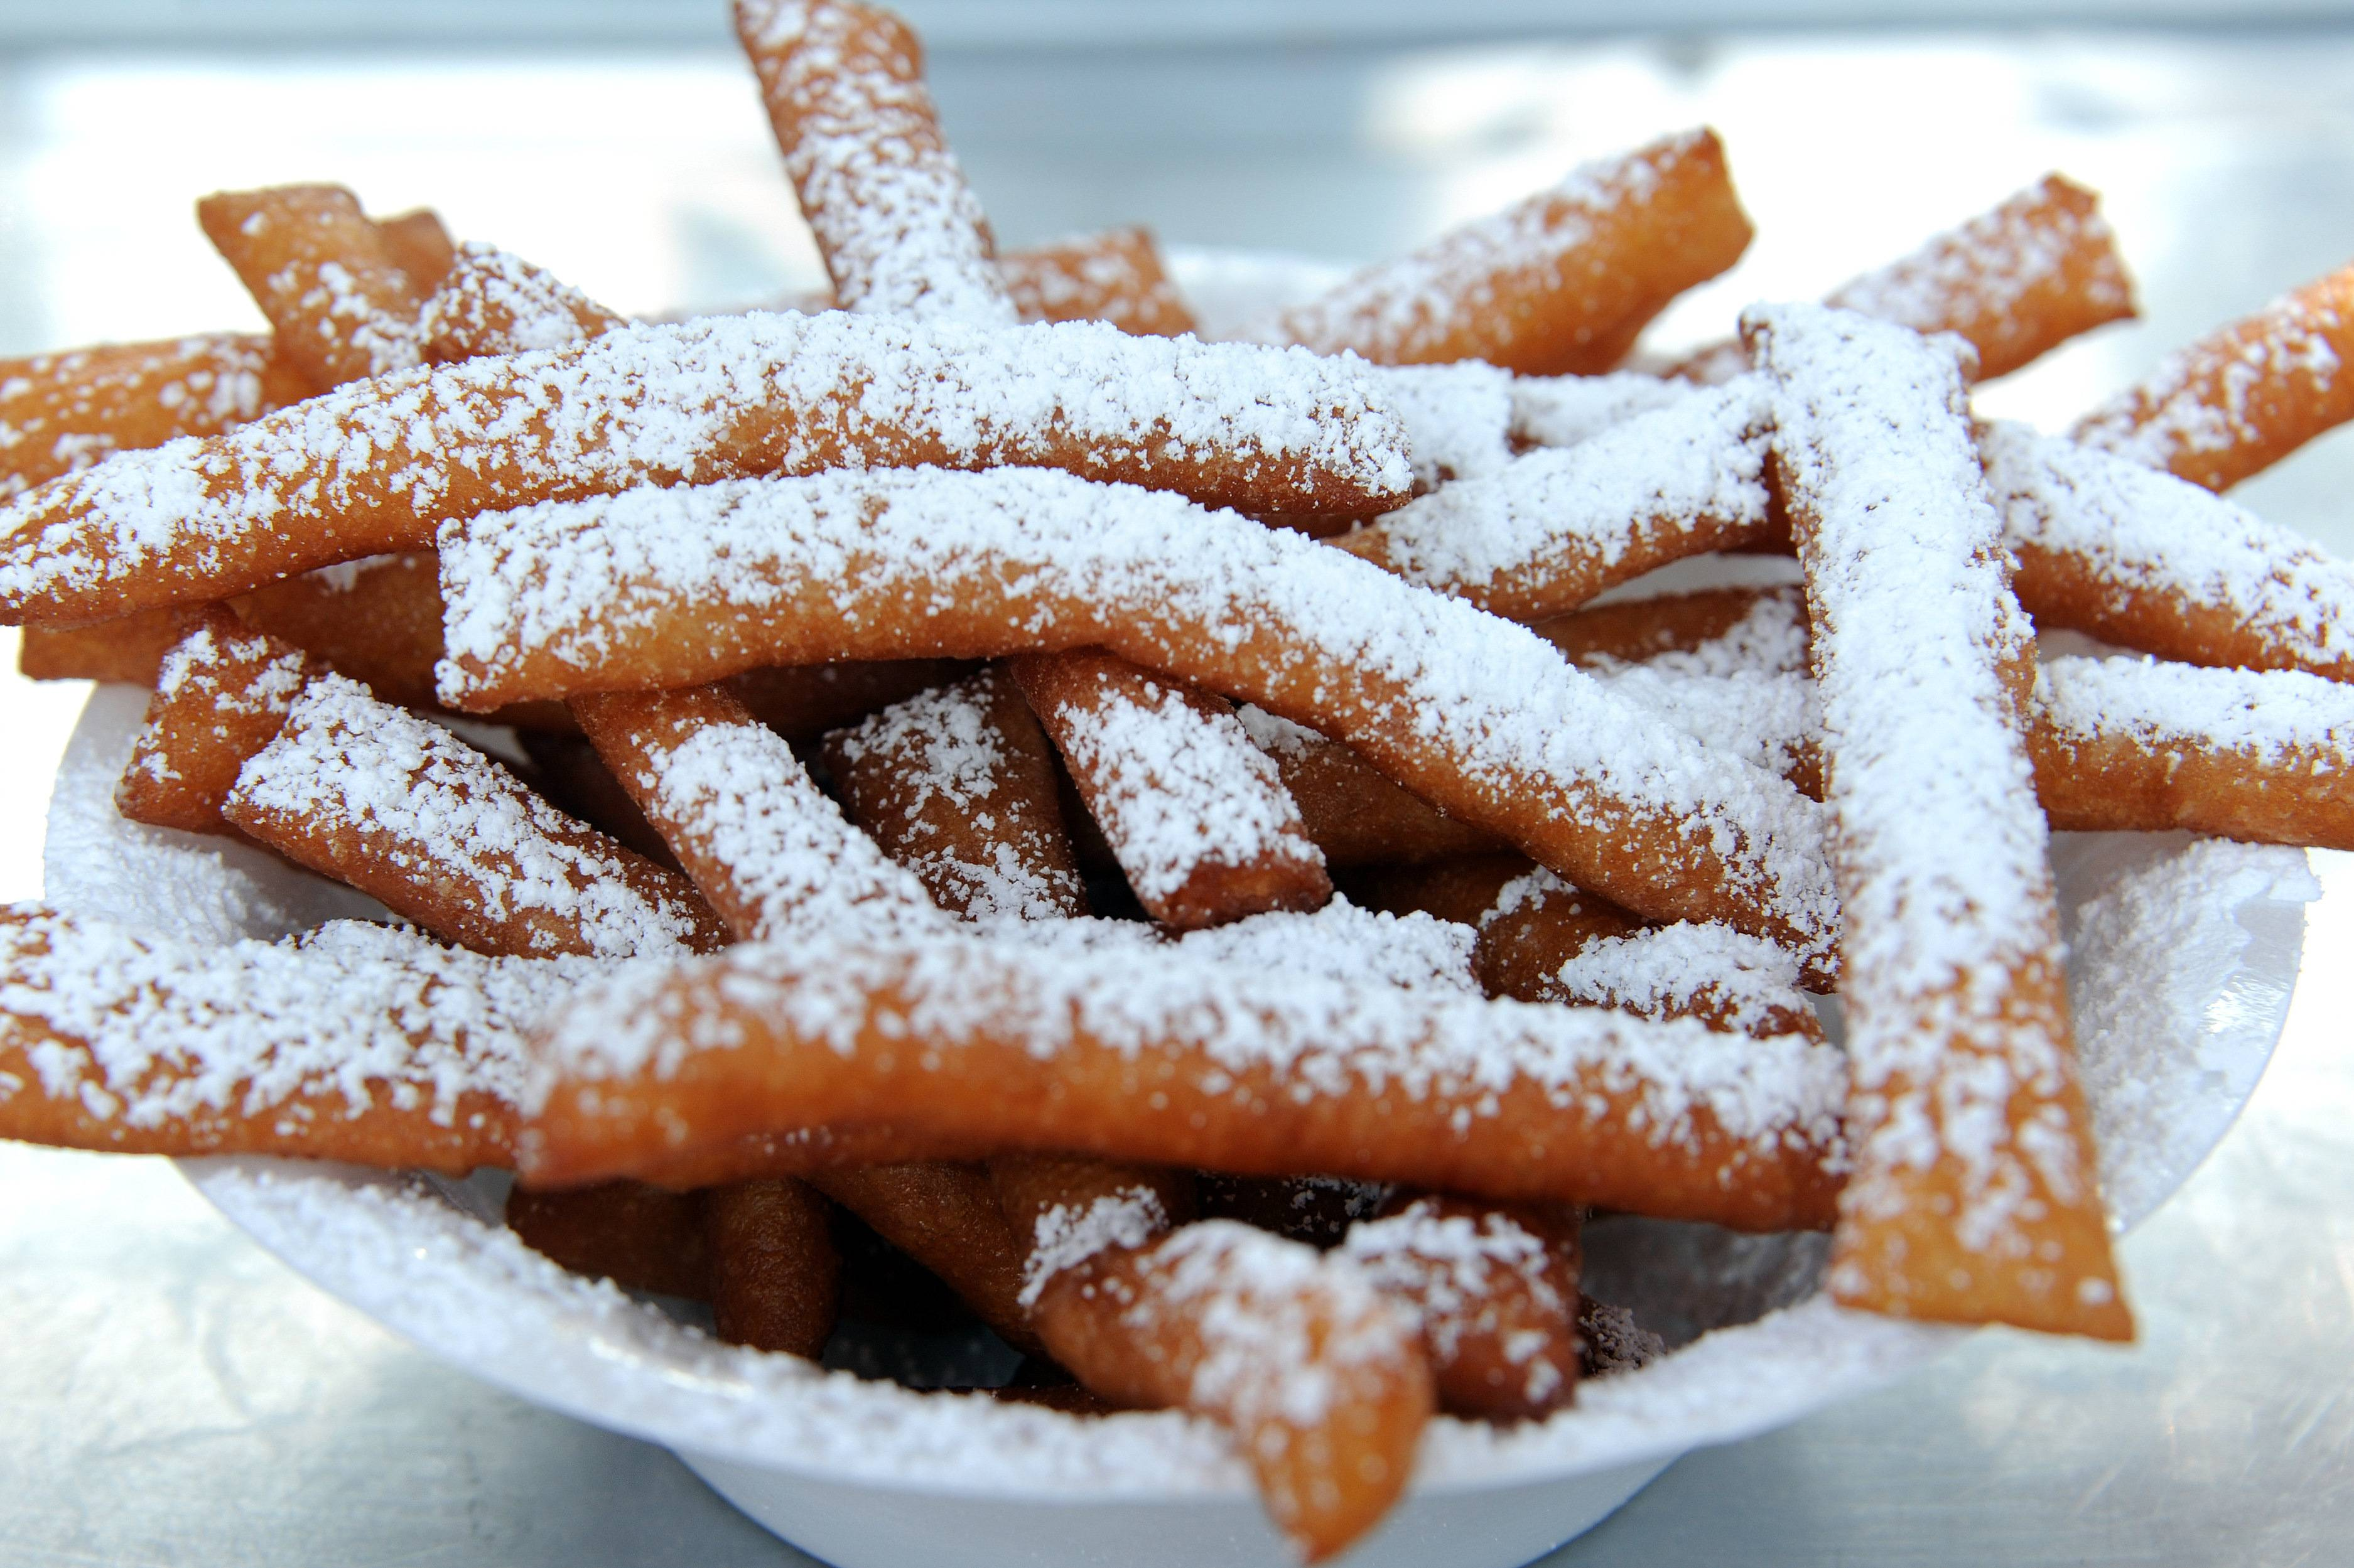 Can I Make Funnel Cake With Cake Mix